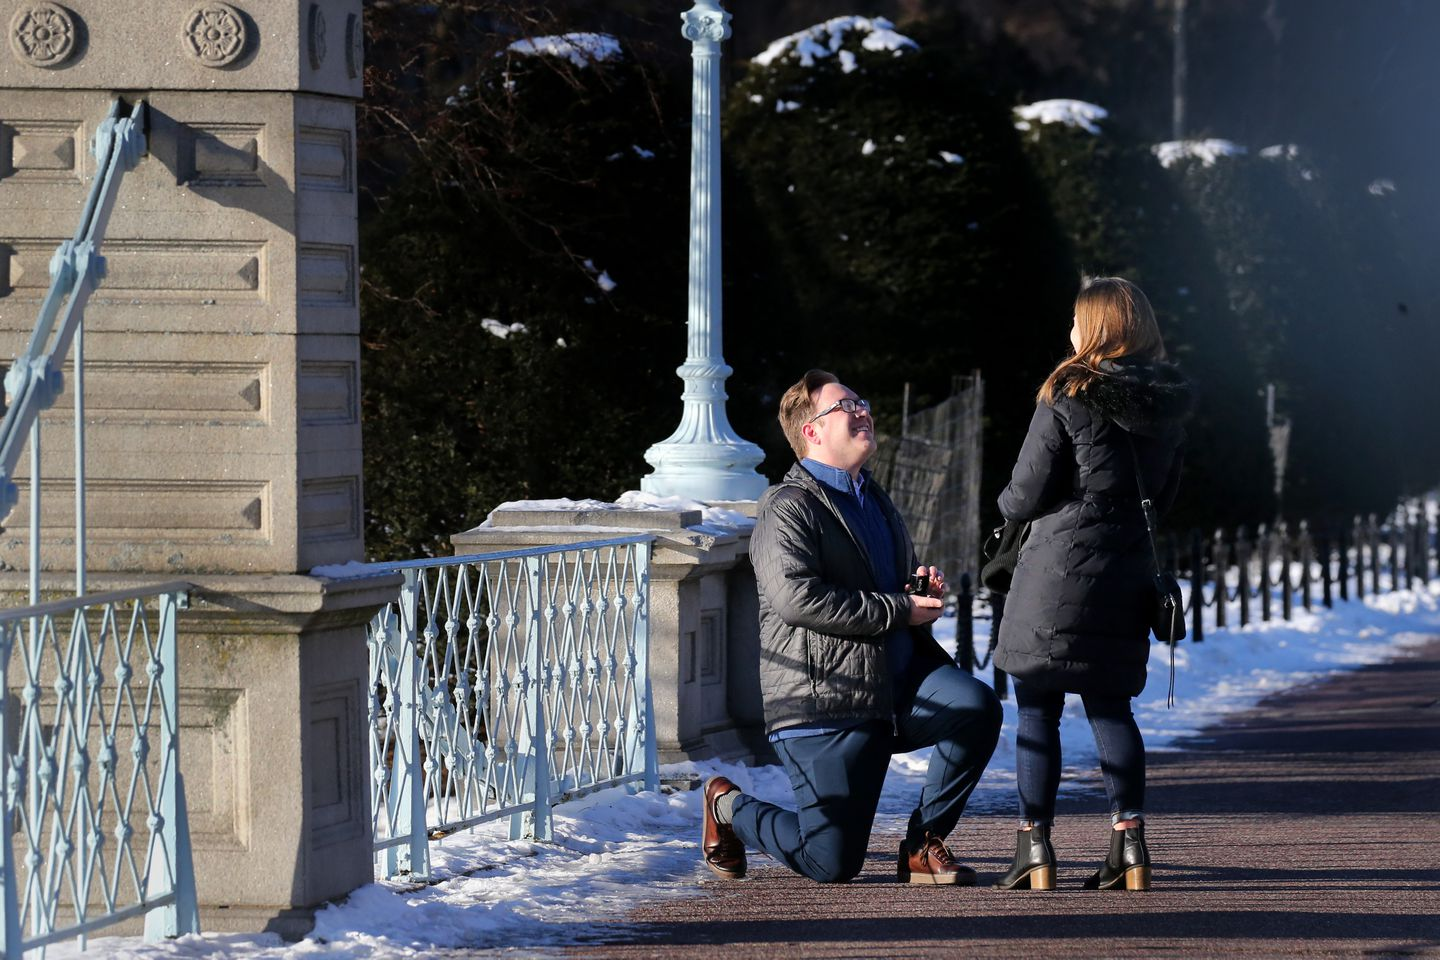 """Mathison Clore kneeled while proposing to Kelly O'Keefe on the bridge at the Public Garden. Clore said it was a cold day to propose but, """"there's no day like the present."""""""